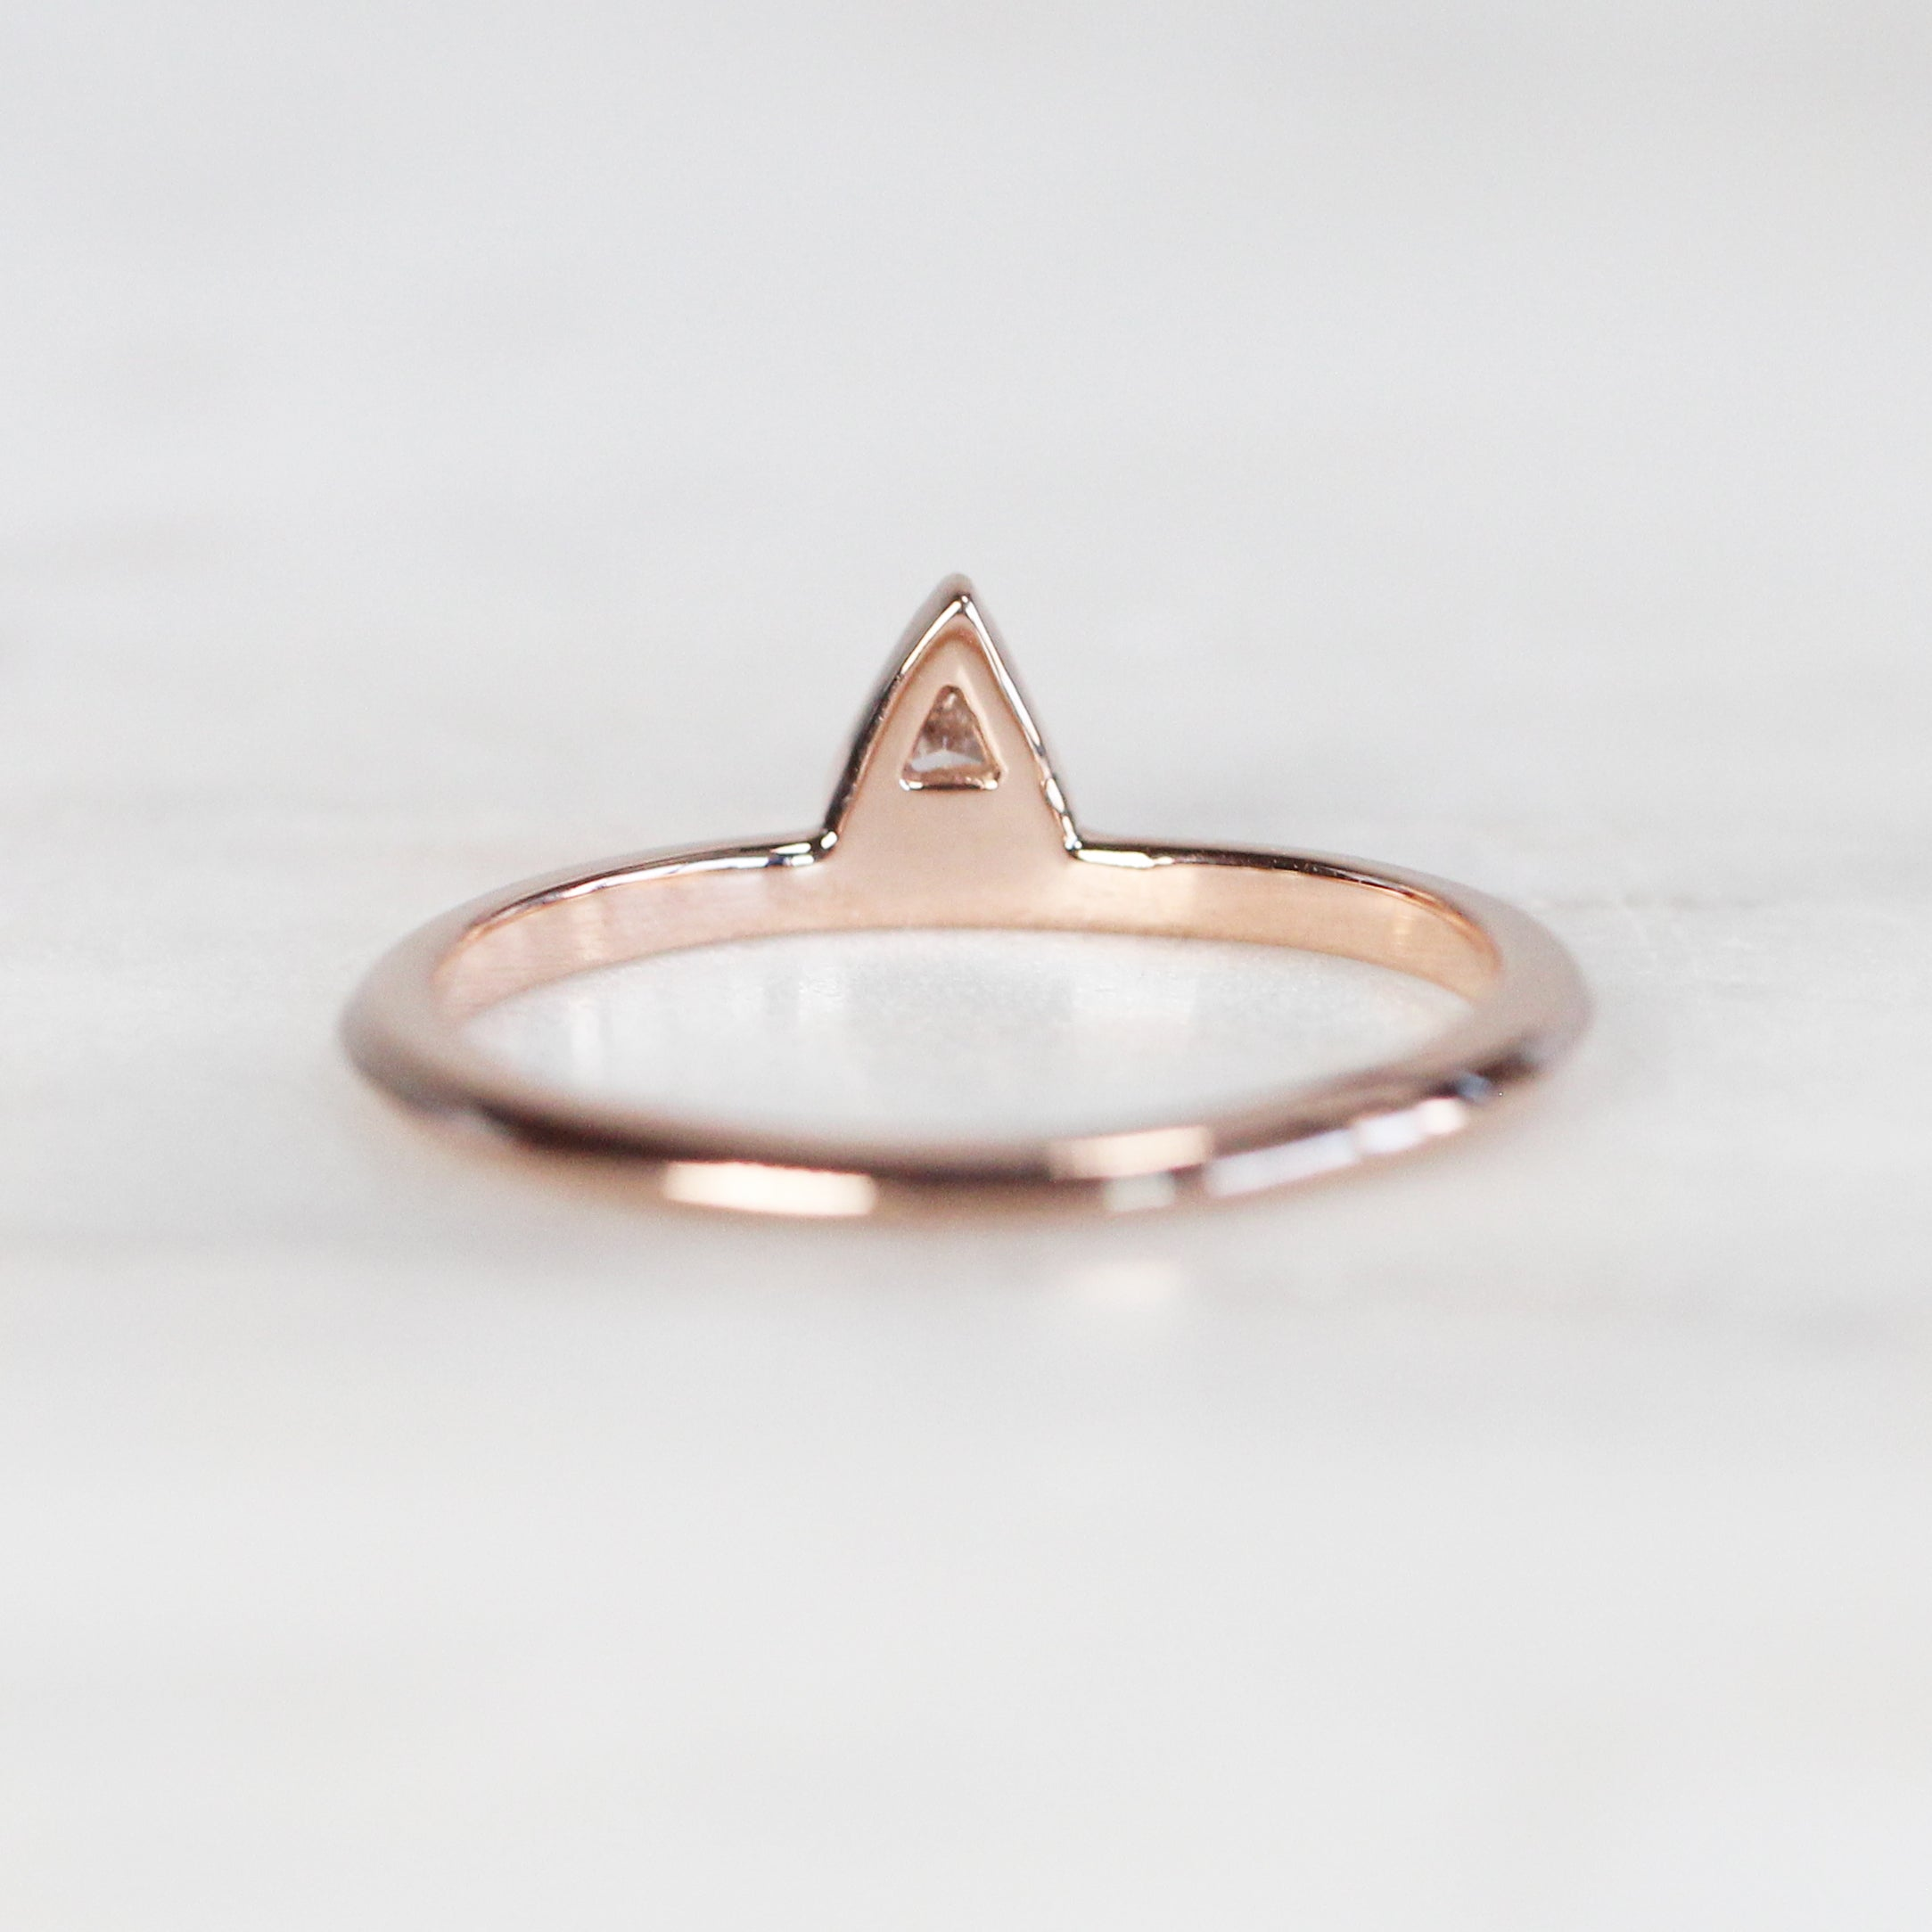 Minimal Diamond Triangle Stacking Ring in 14k Rose Gold - Ready to Size and Ship - Salt & Pepper Celestial Diamond Engagement Rings and Wedding Bands  by Midwinter Co.